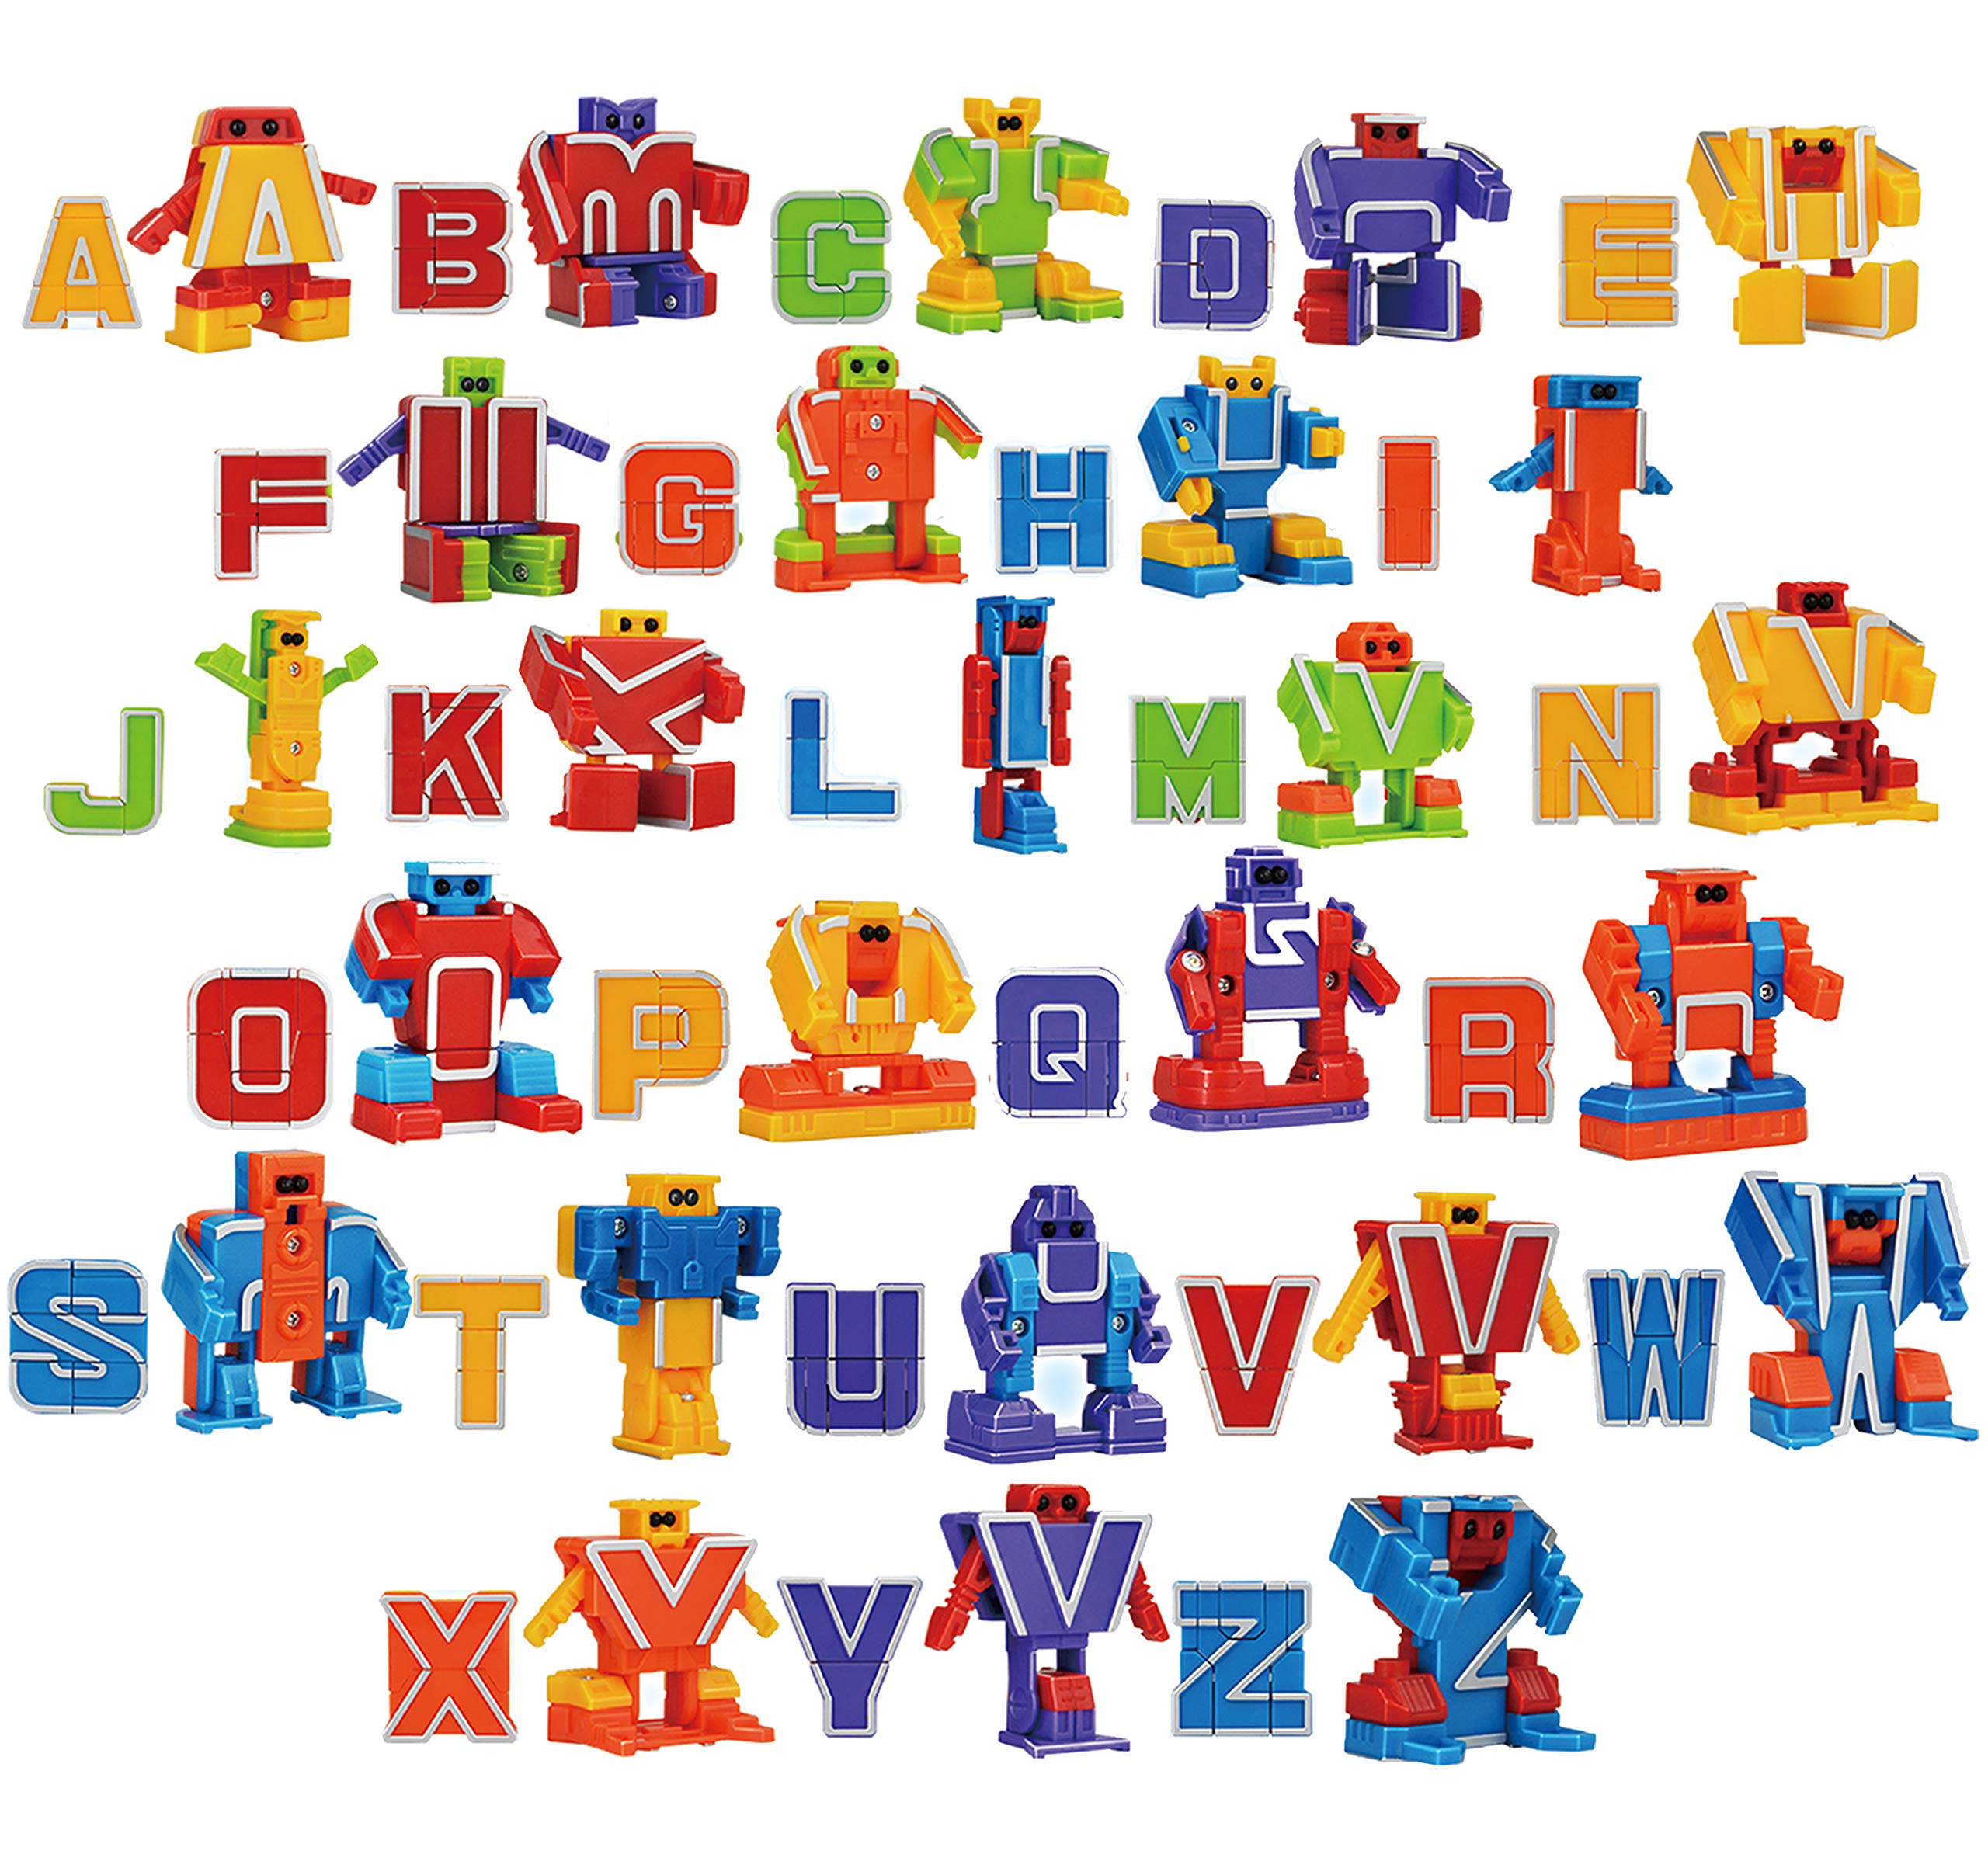 26 Pieces Alphabet Robot Transformer Action Figure Autobots Toys for Kids ABC learning, Birthday Party, School Classroom Rewards, Carnival Prizes, Pre-school Education Toy,Easter Basket Stuffers